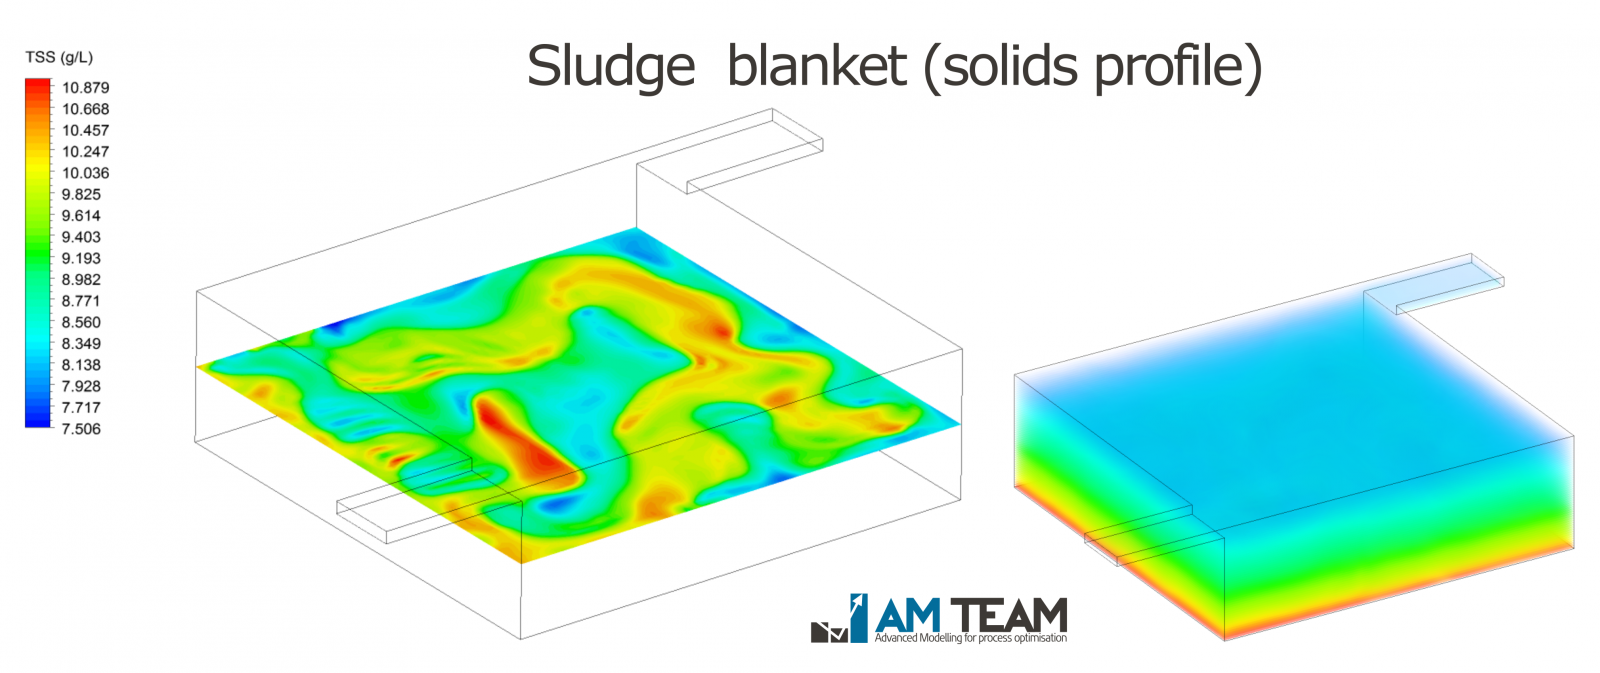 Sludge blanket simulation using CFD